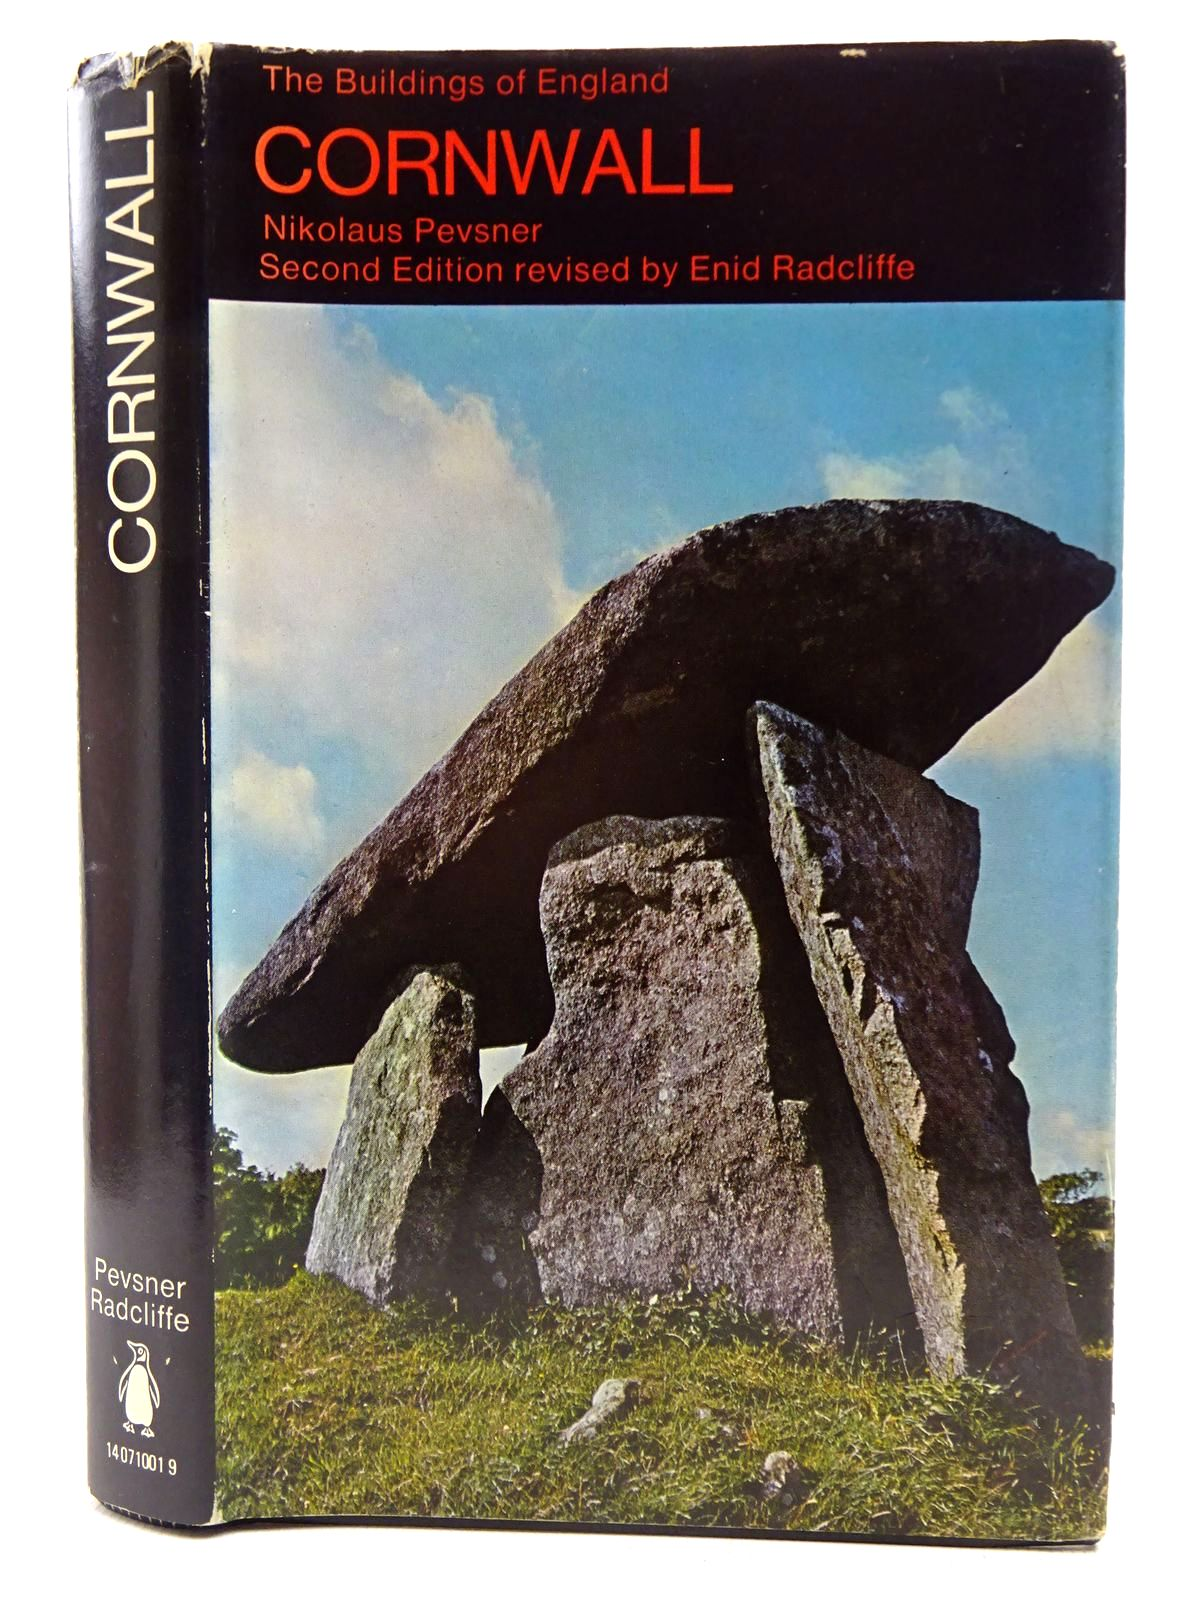 Photo of CORNWALL (BUILDINGS OF ENGLAND) written by Pevsner, Nikolaus Radcliffe, Enid published by Penguin (STOCK CODE: 2128648)  for sale by Stella & Rose's Books